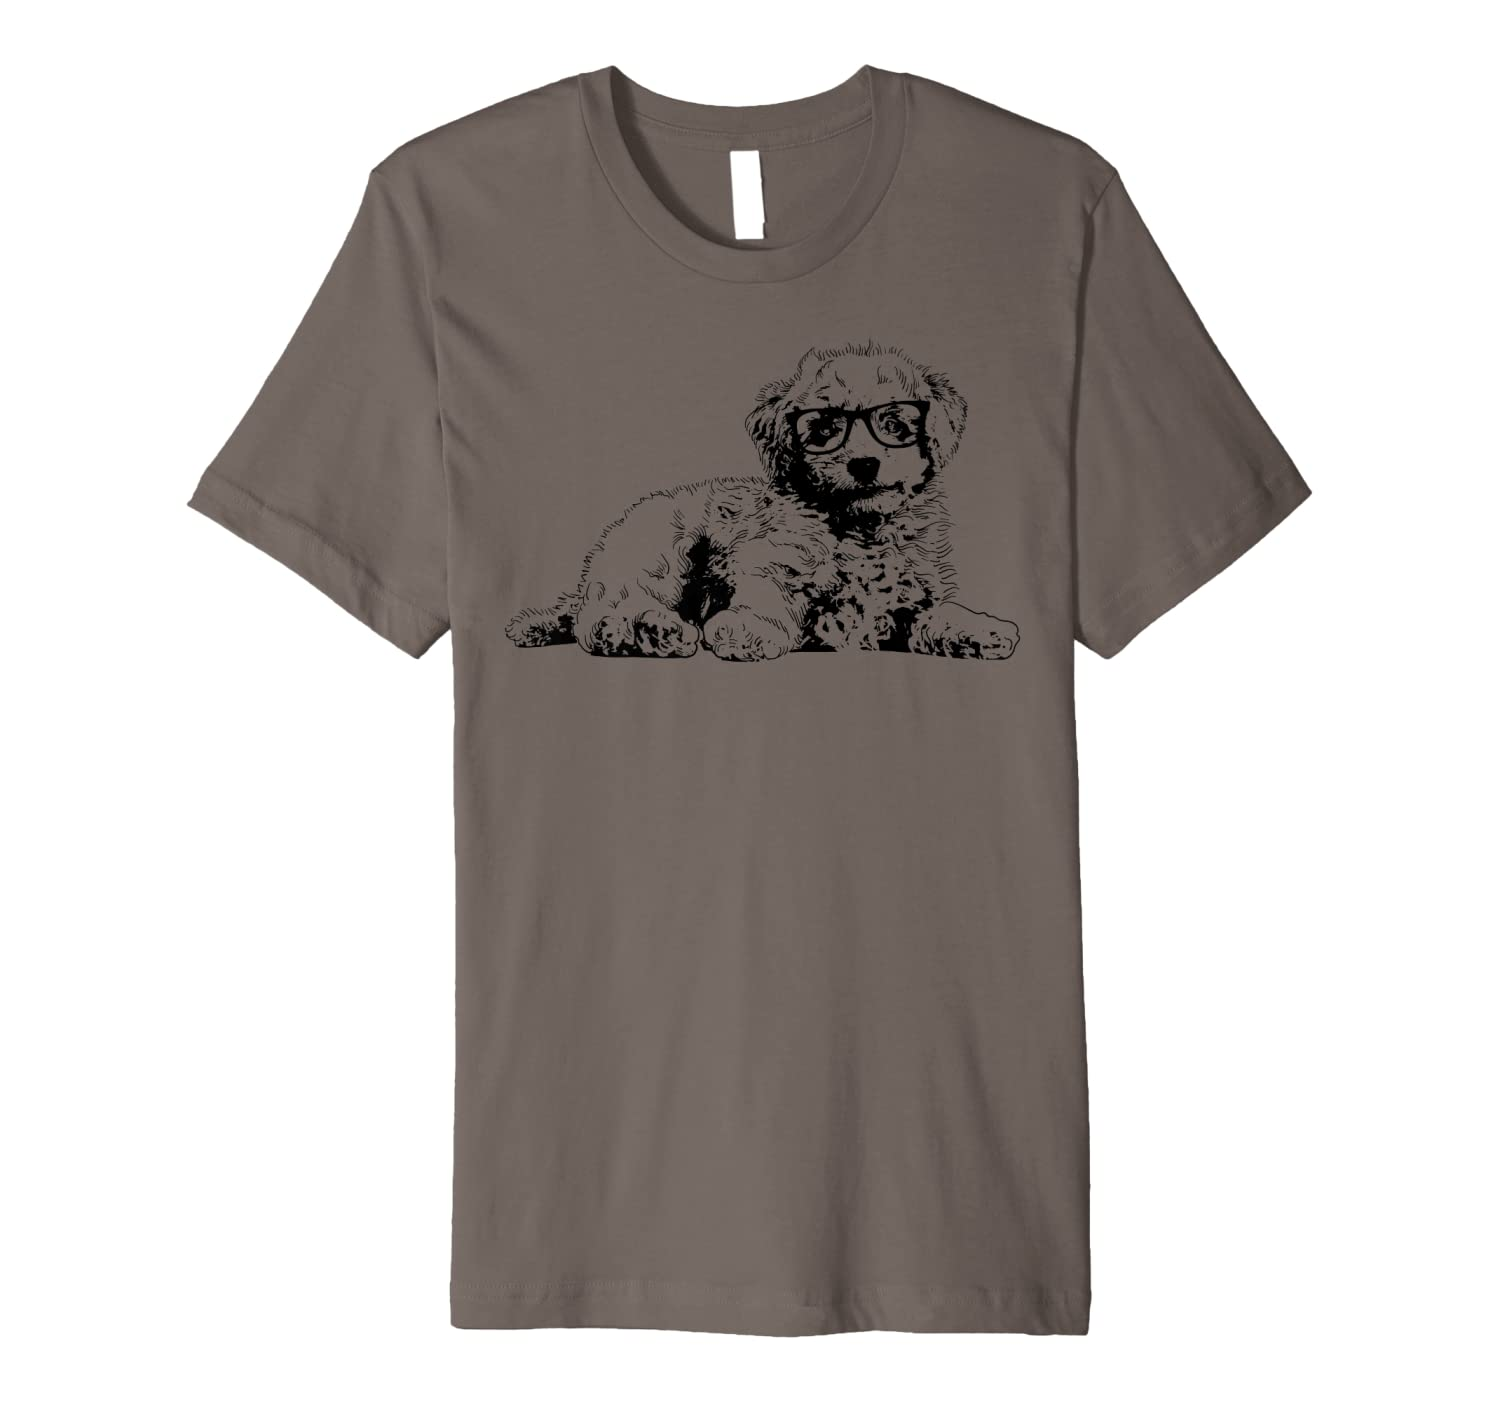 Funny Doodle With Glasses | Cute Dog Lovers Boys Girls Gift Premium T-Shirt